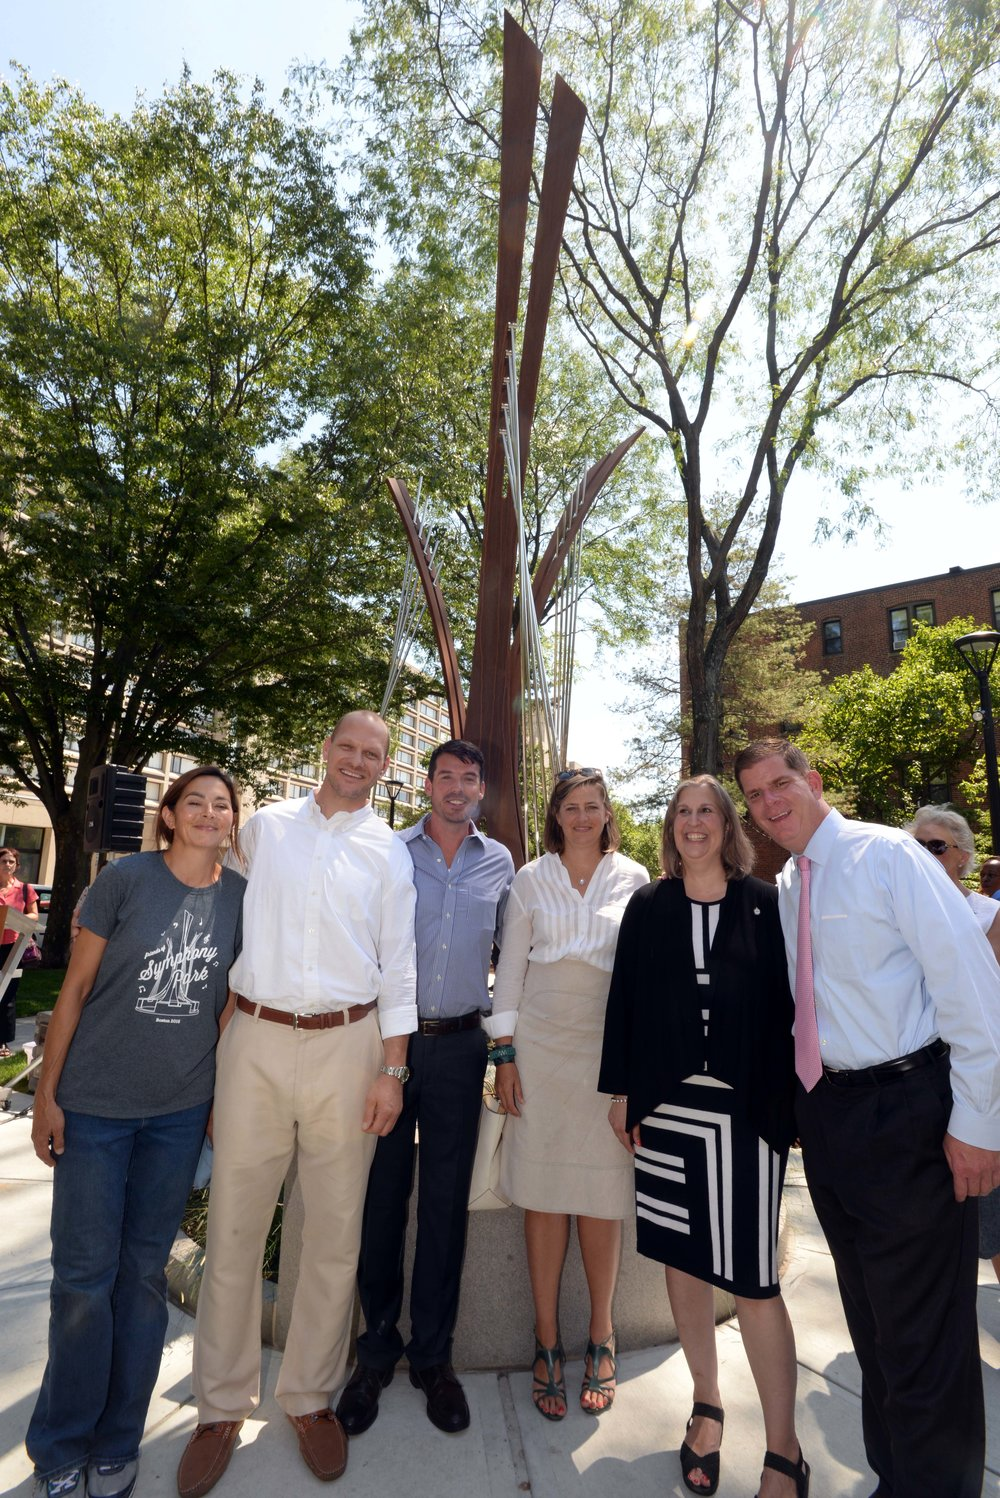 Marie Fukuda, Jacob Kulin, Jon Pate, Karen Euler, Julie Burros, and Mayor Marty Walsh